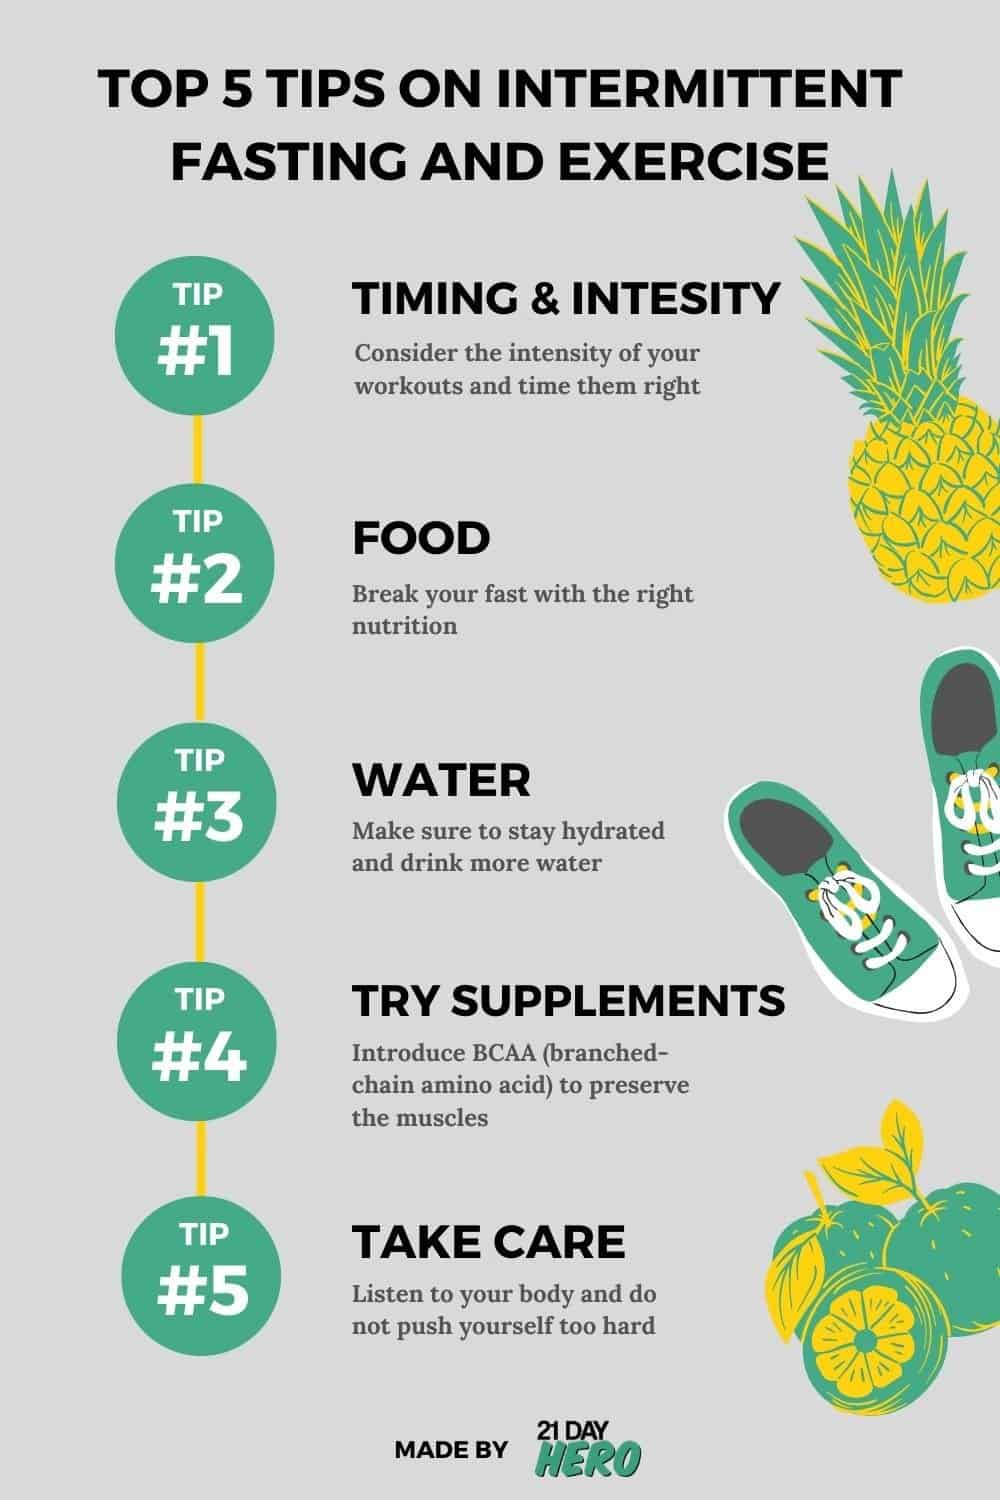 top tips on intermittent fasting and exercise